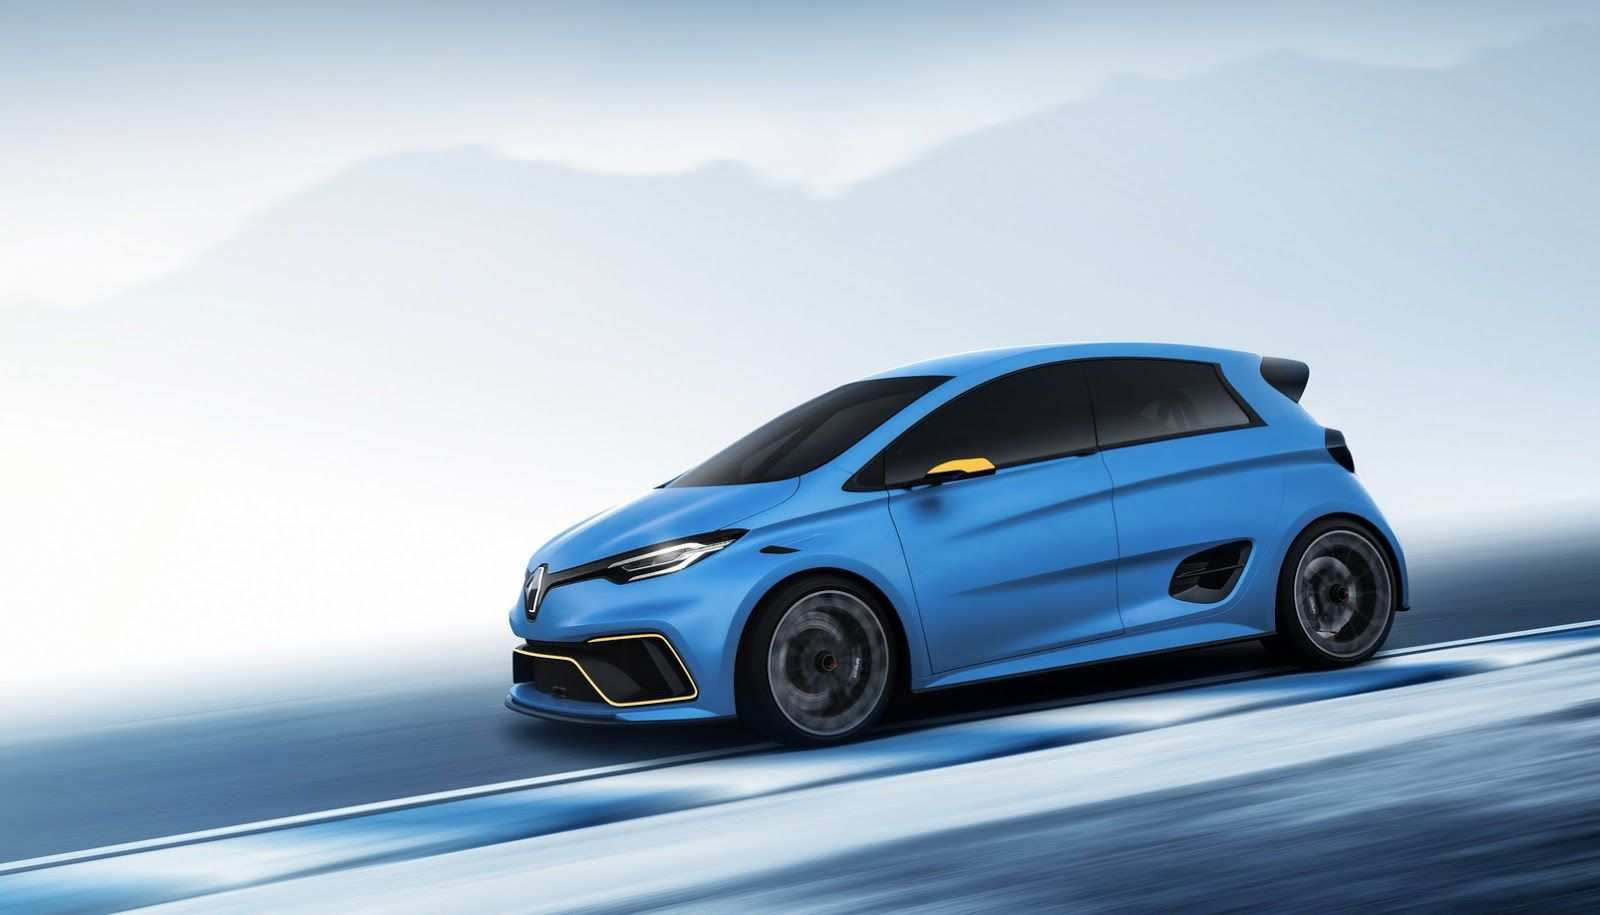 50 Concept of Renault Zoe 2020 Pricing with Renault Zoe 2020